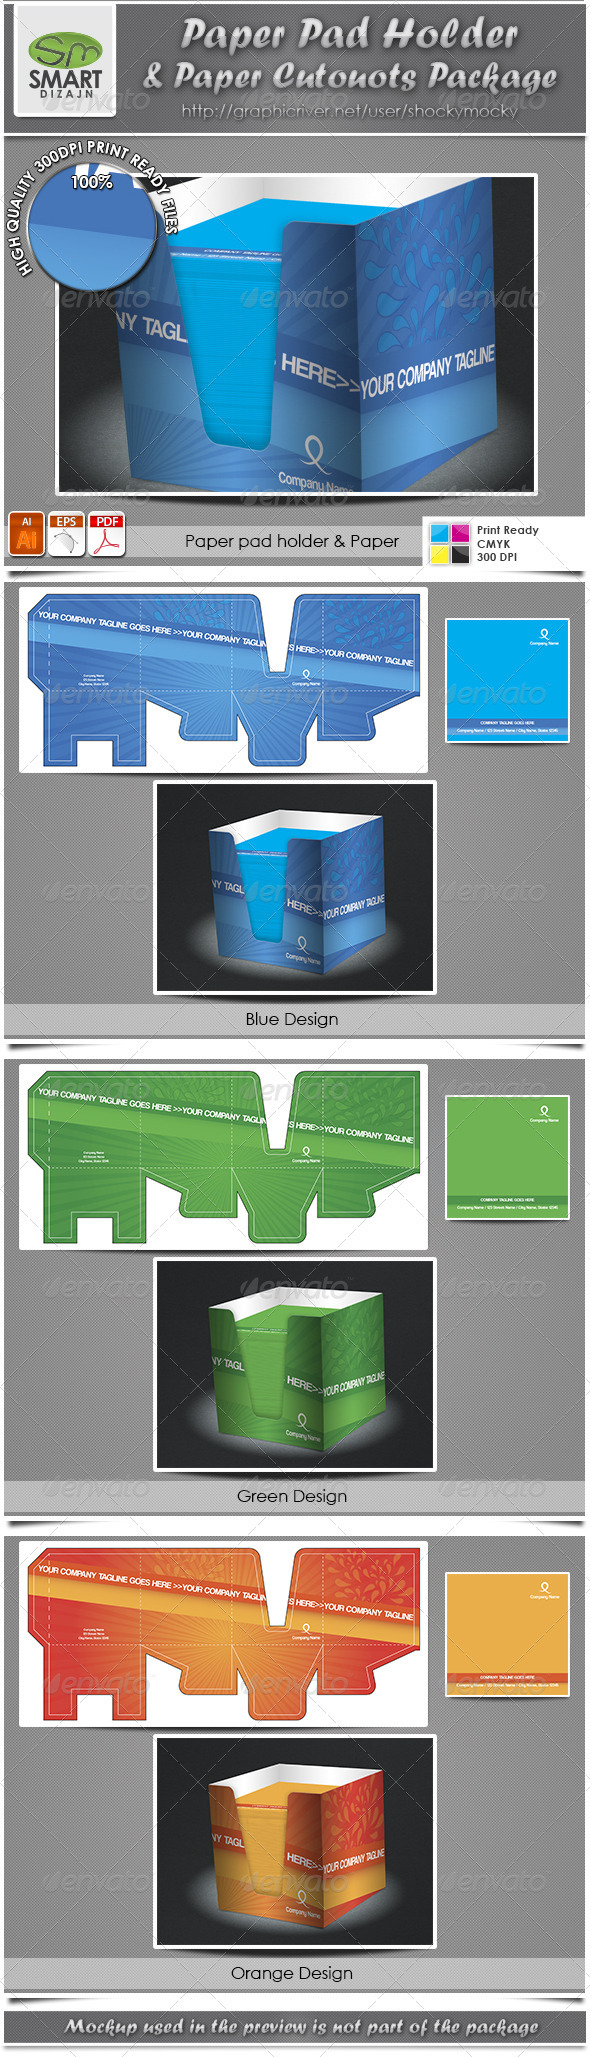 Paper Pad Holder & Paper Cutouts Package  设计素材下载